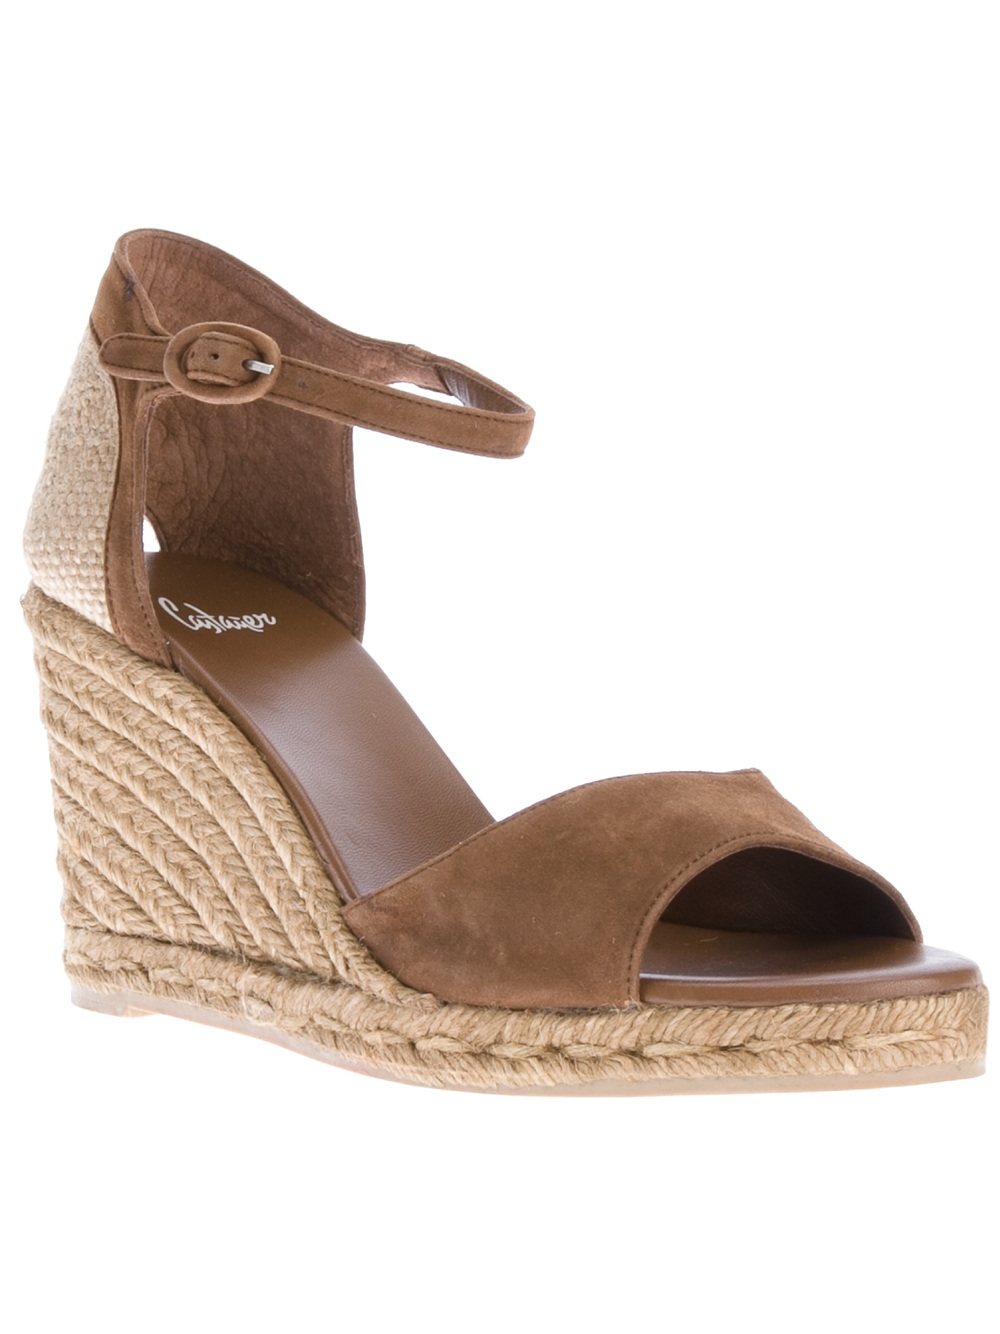 bd62ccf1594 Castaner Balbina Sandal Wedge in Brown - Lyst